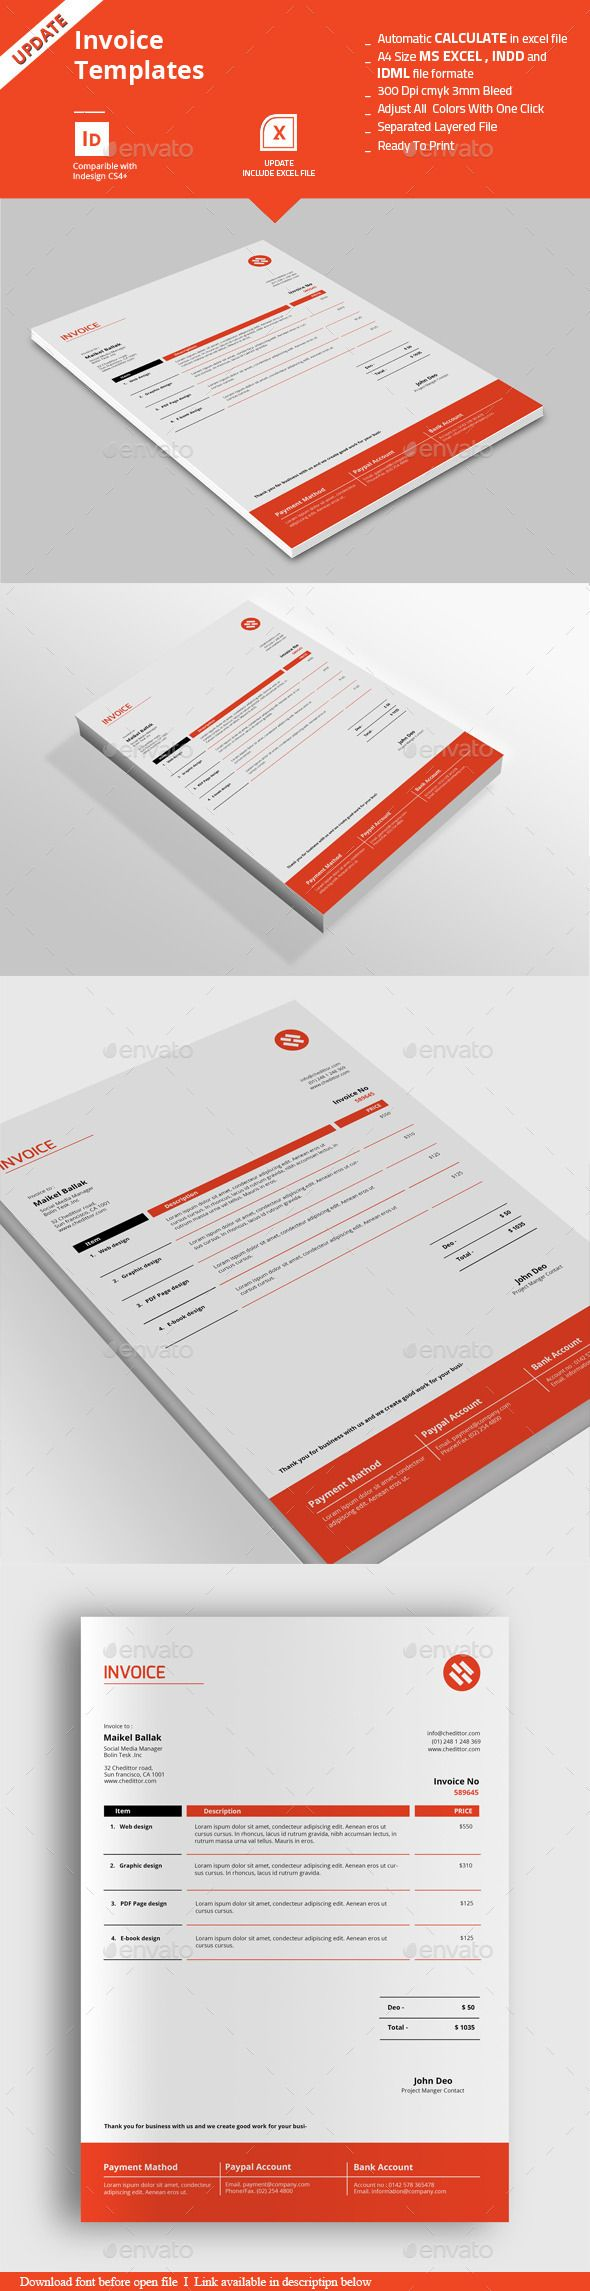 Invoice Templates | Template, Proposal templates and Annual report ...